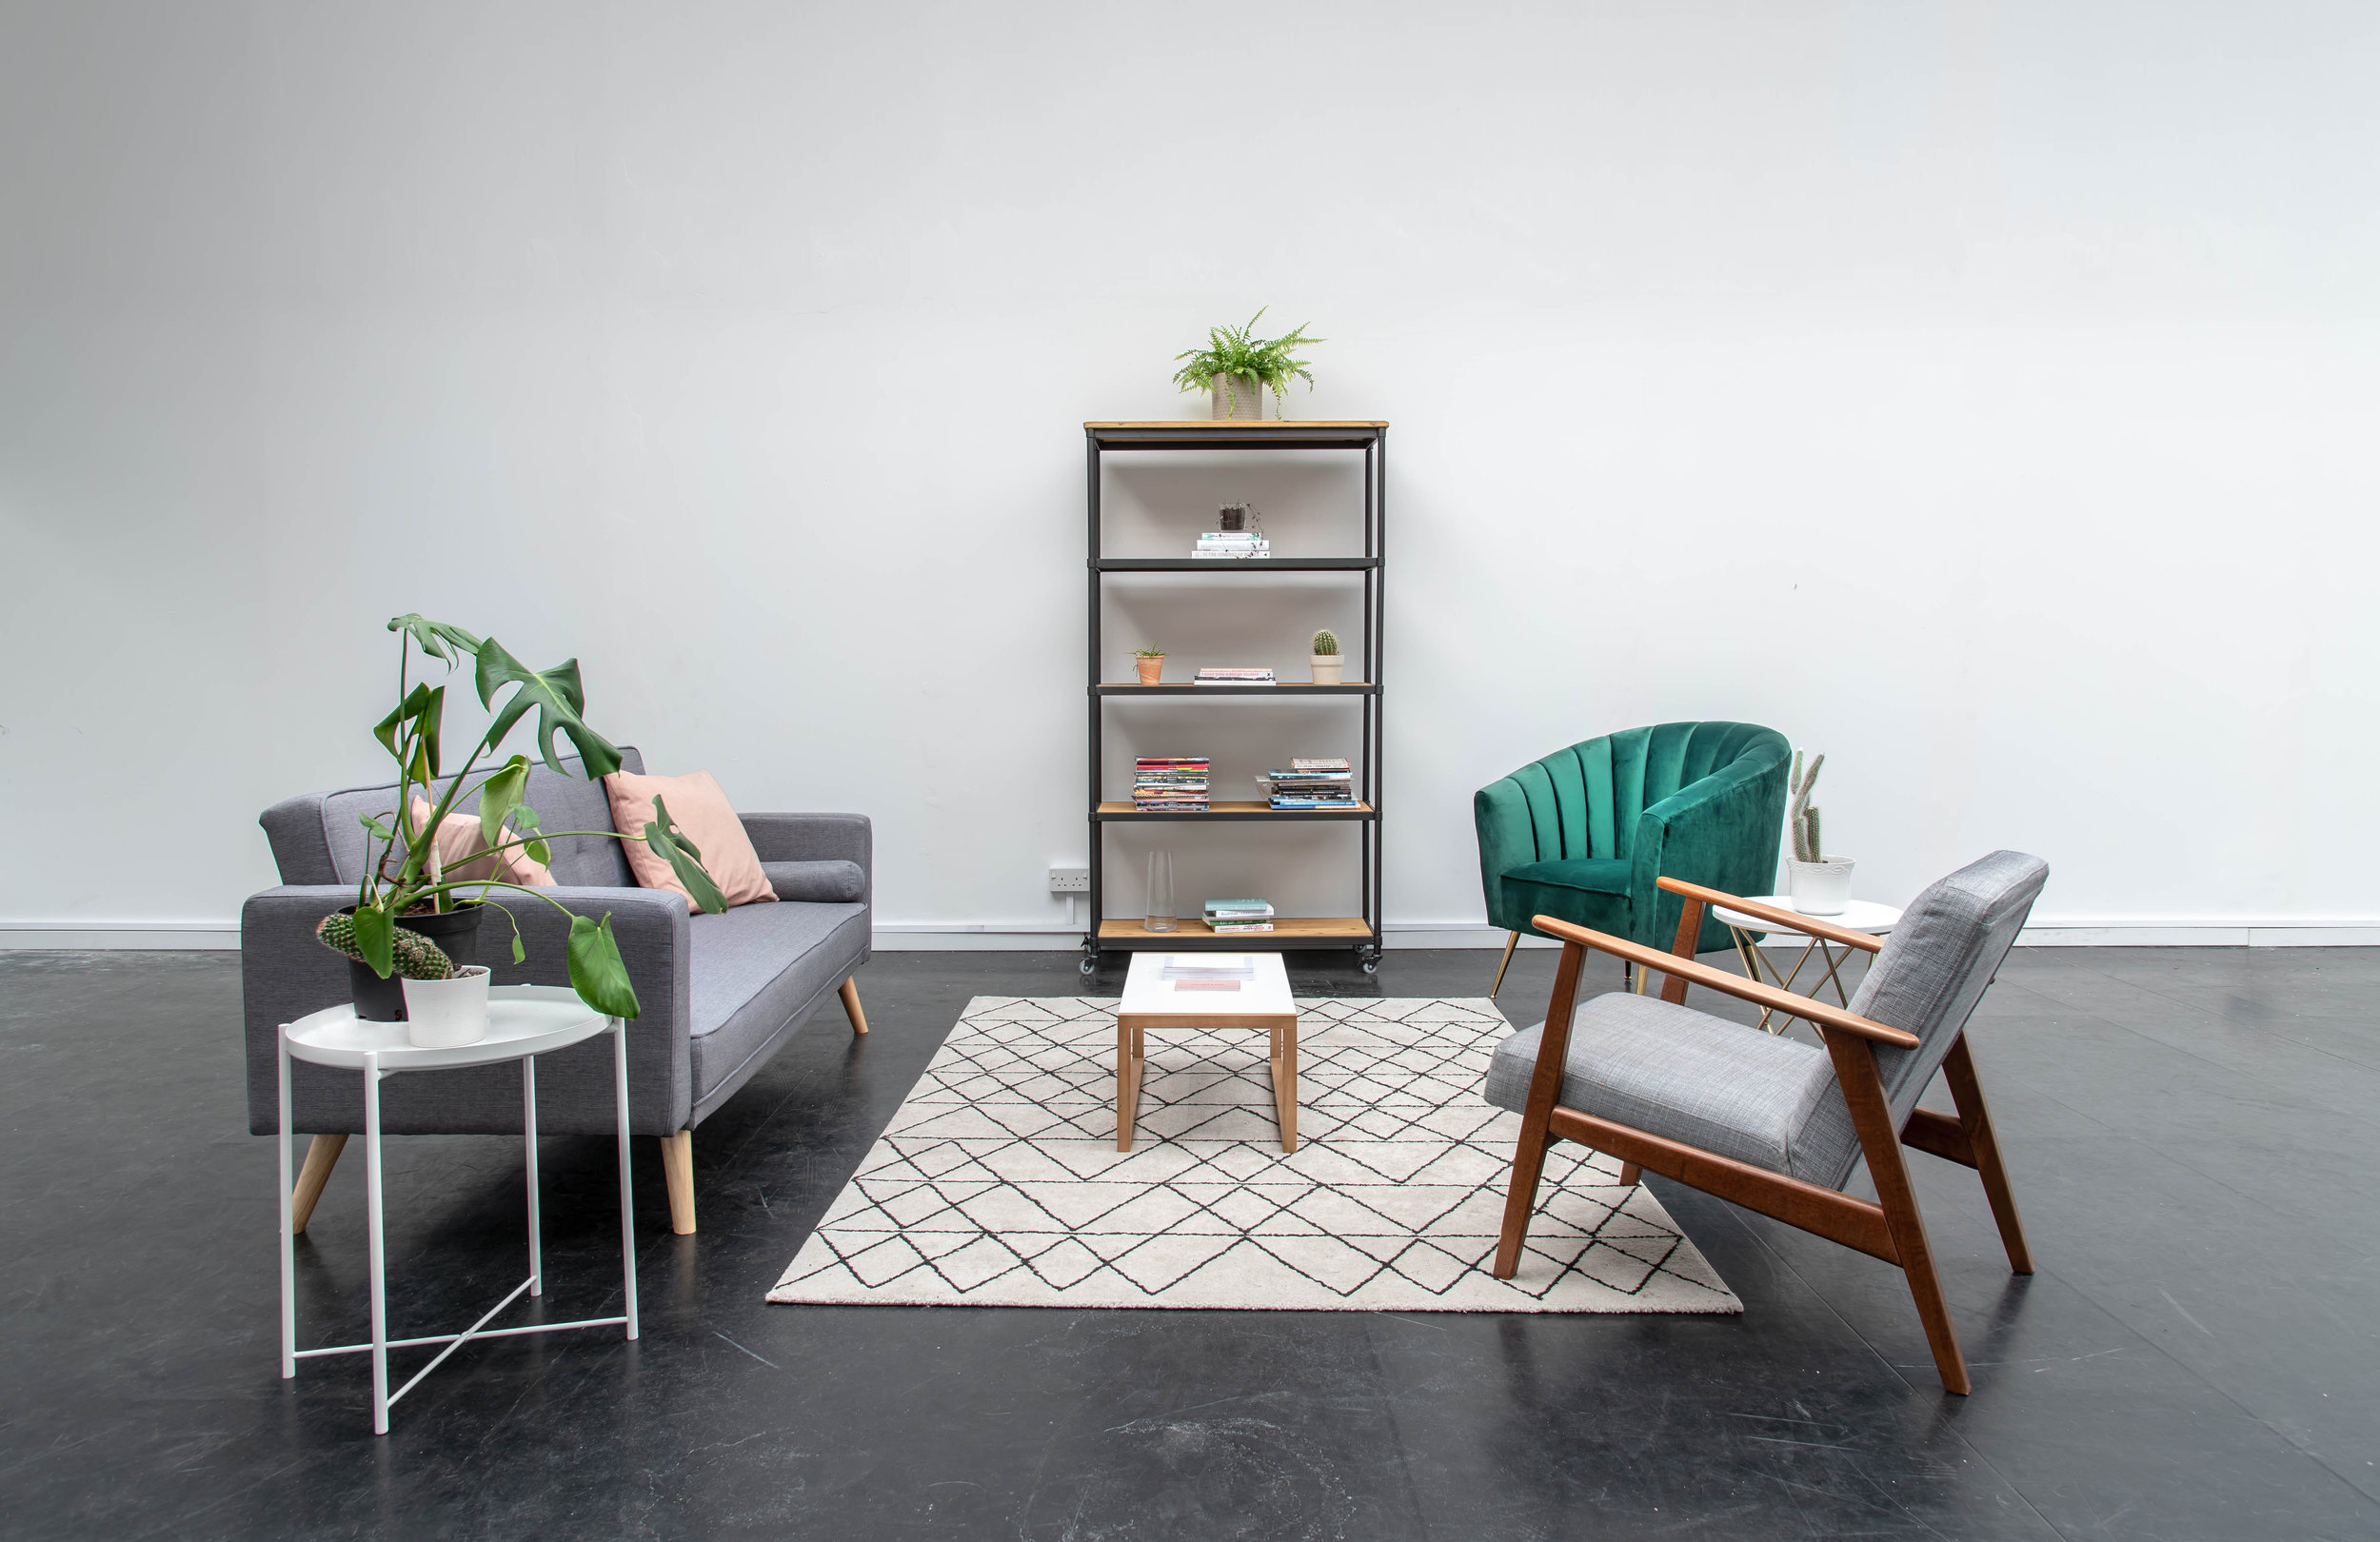 One_Girl_Band_Houseology_Interior_Shoot_Lucy_Knott_Photography_Glasgow_Aug_2019 (19).jpg